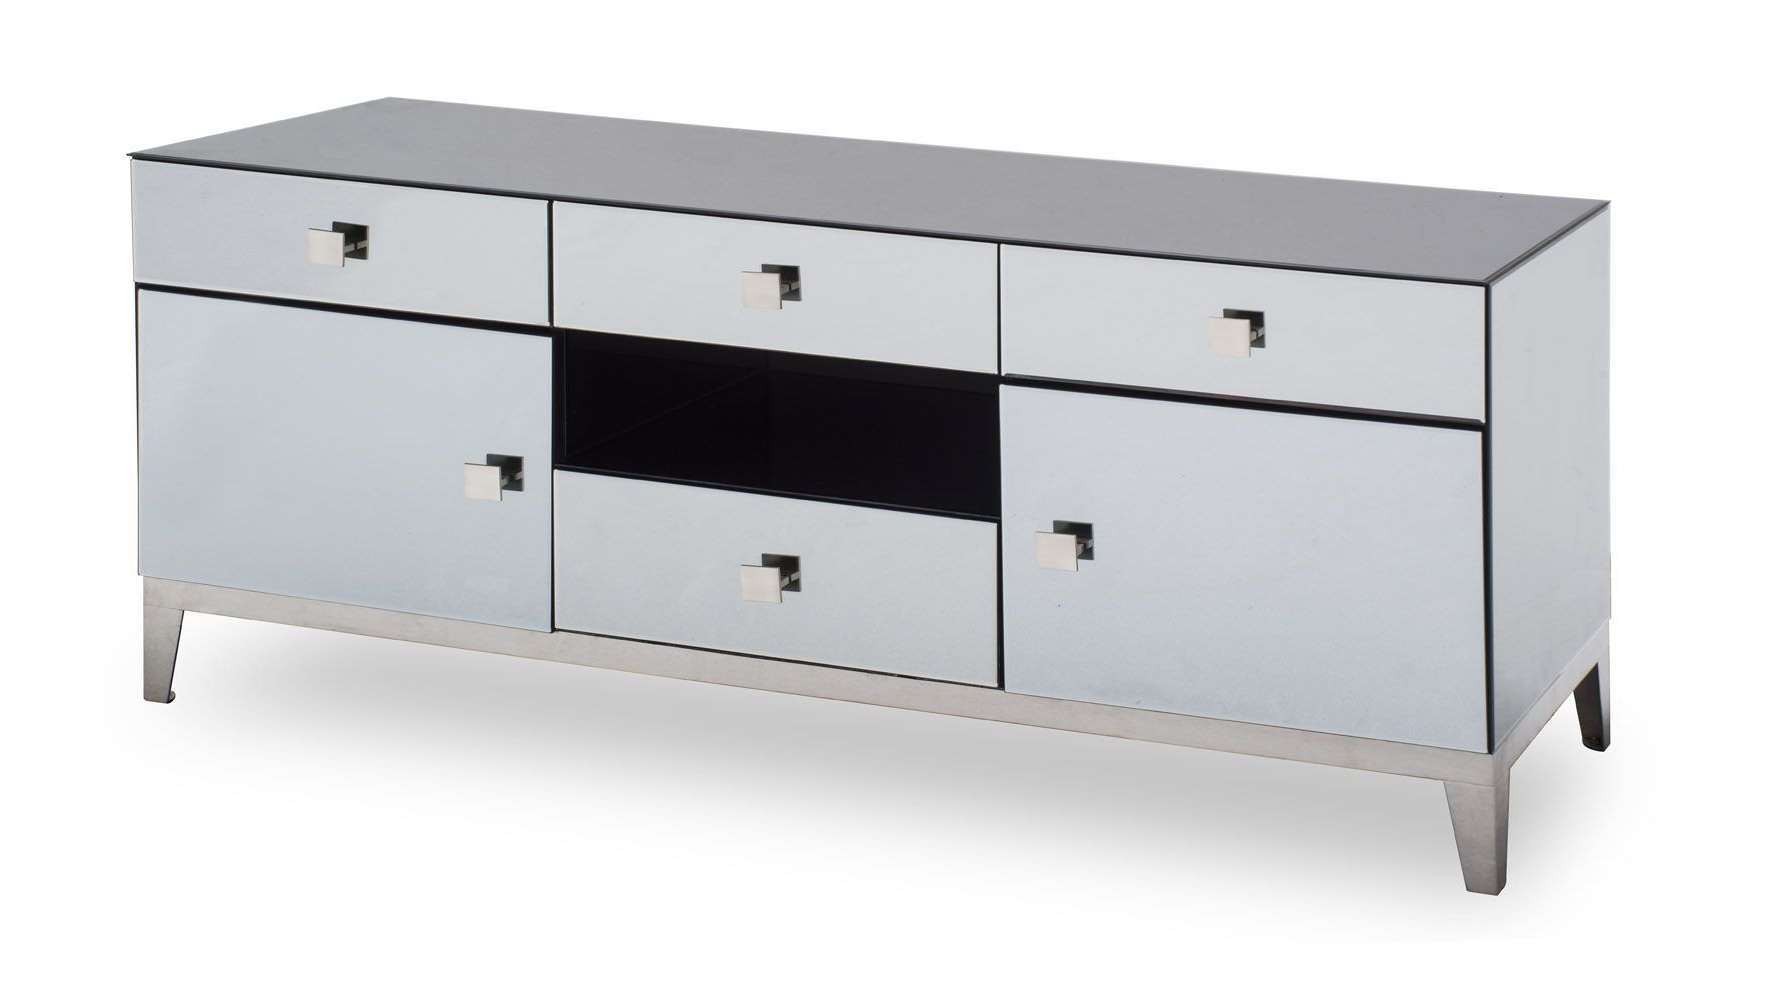 Modern Grey Mirrored Glass Berlin Tv Stand | Zuri Furniture With Mirrored Tv Cabinets (View 13 of 20)